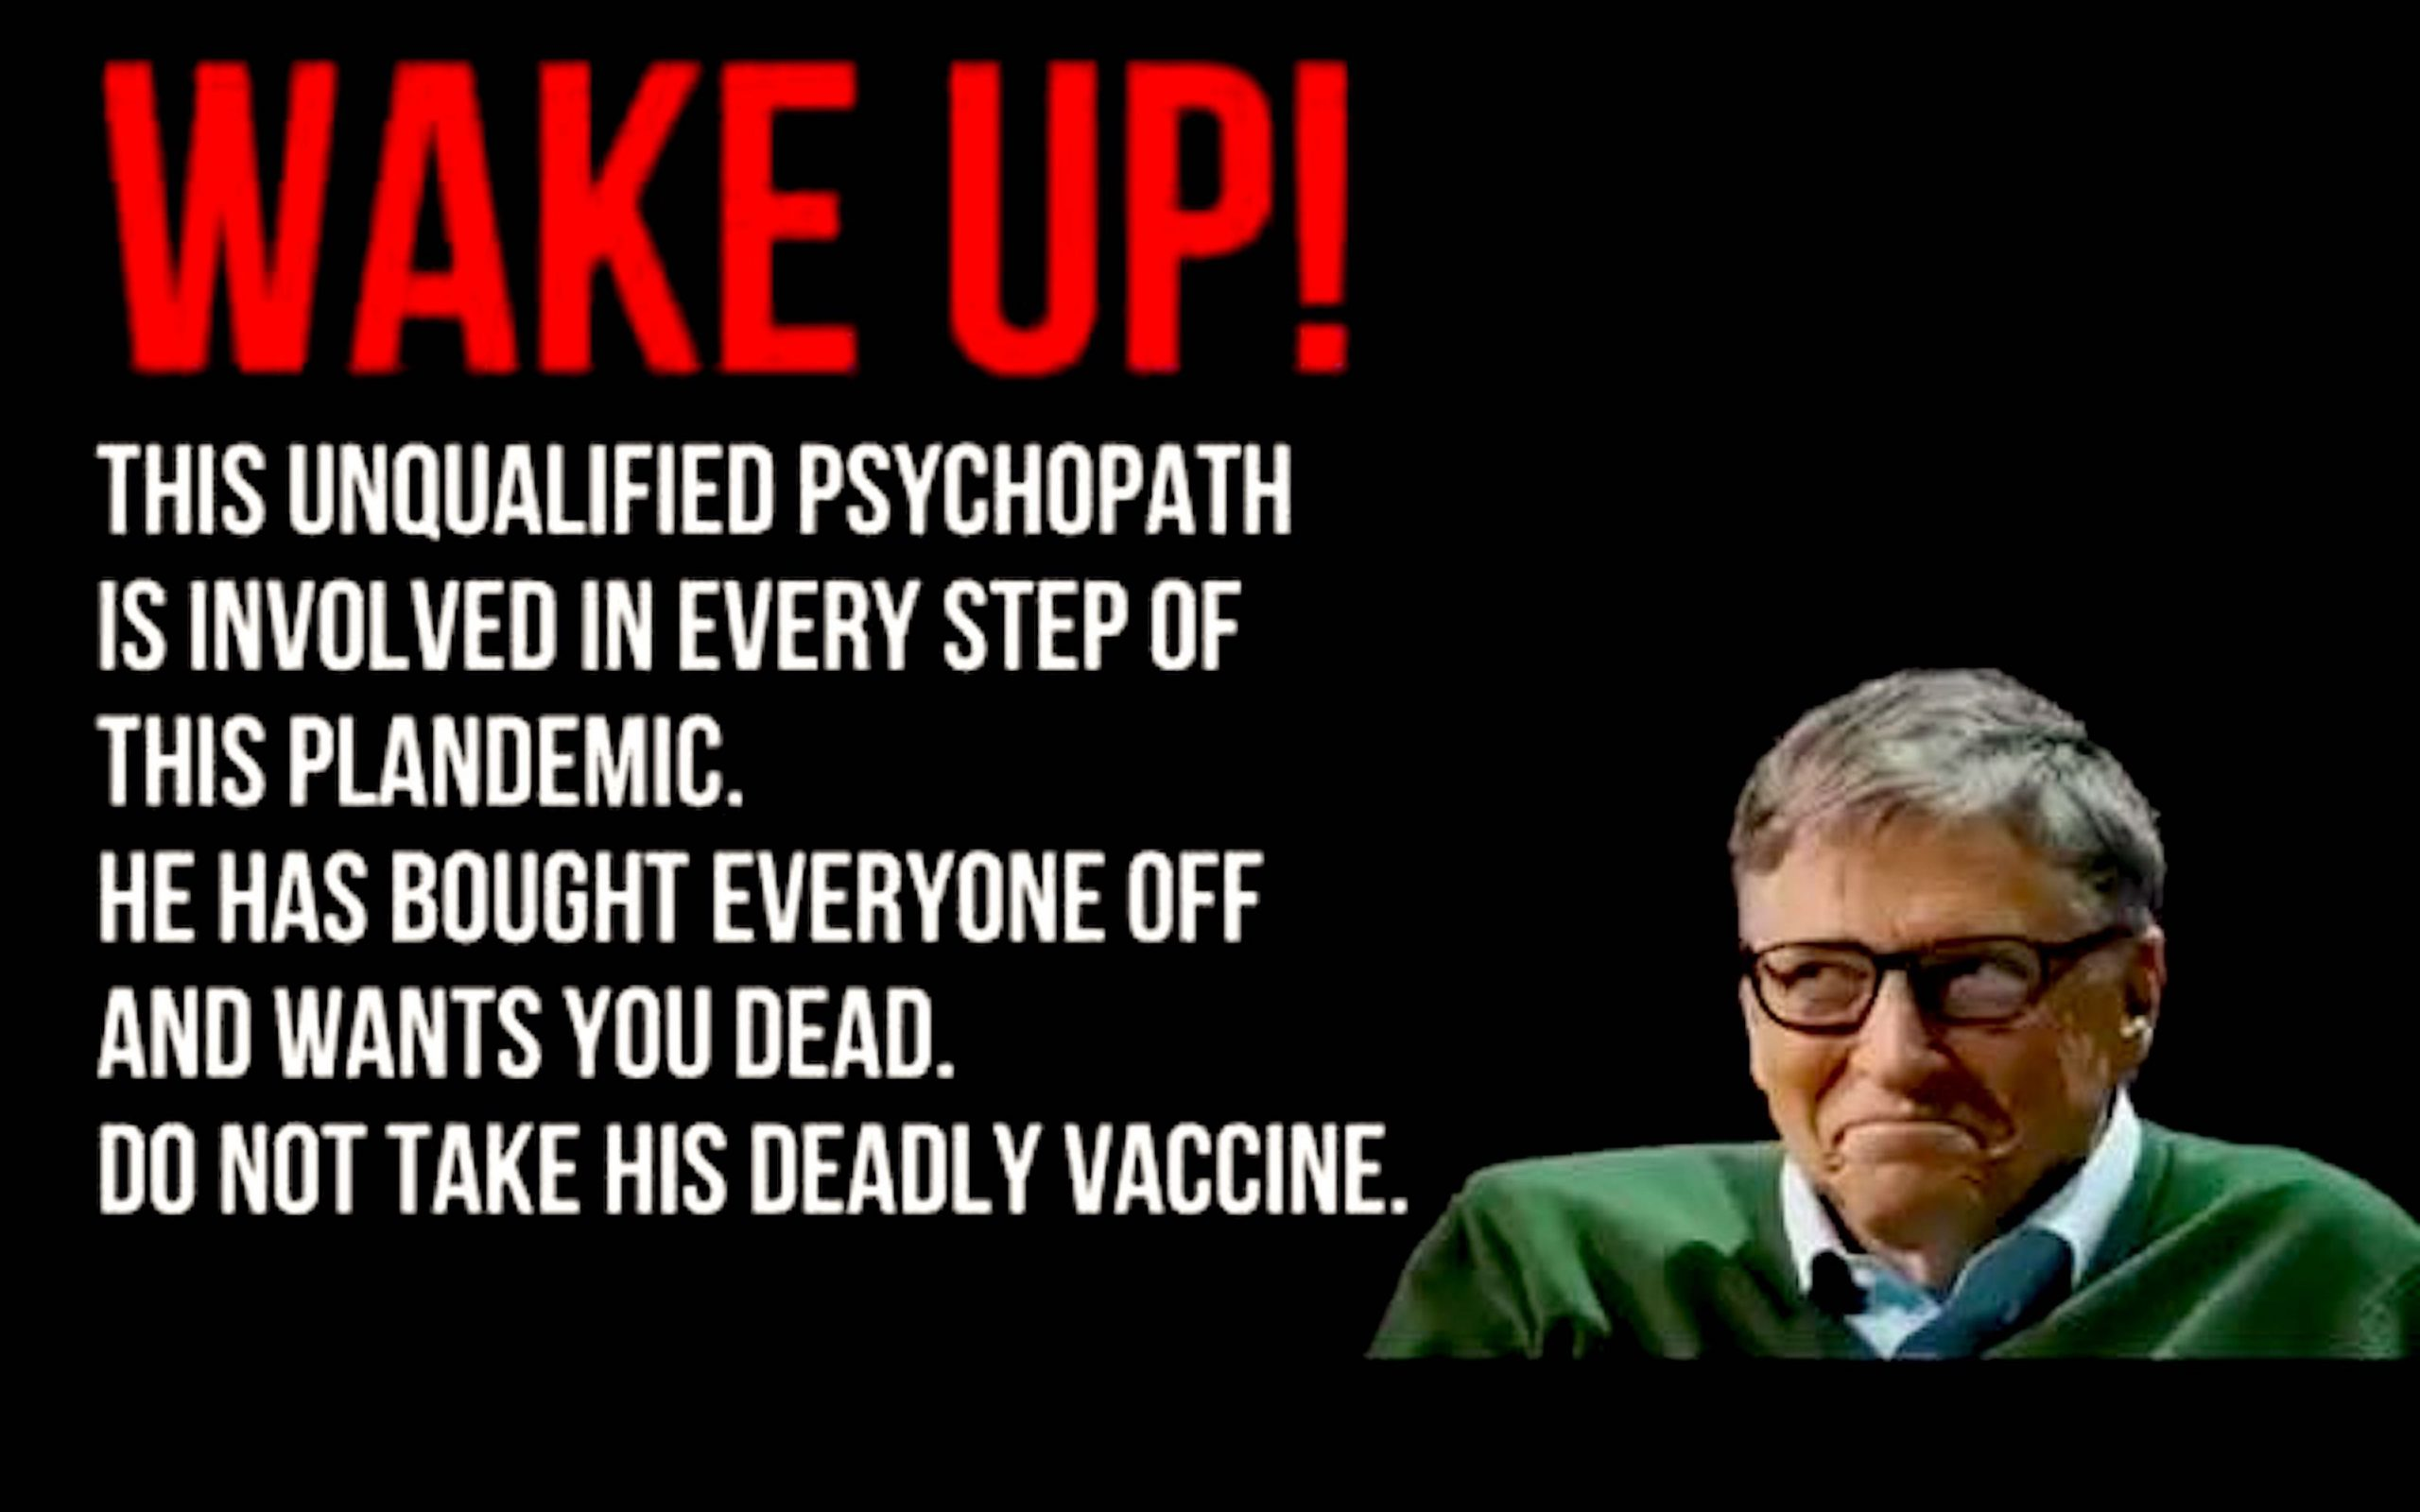 Wake Up! (foto Before It s News)